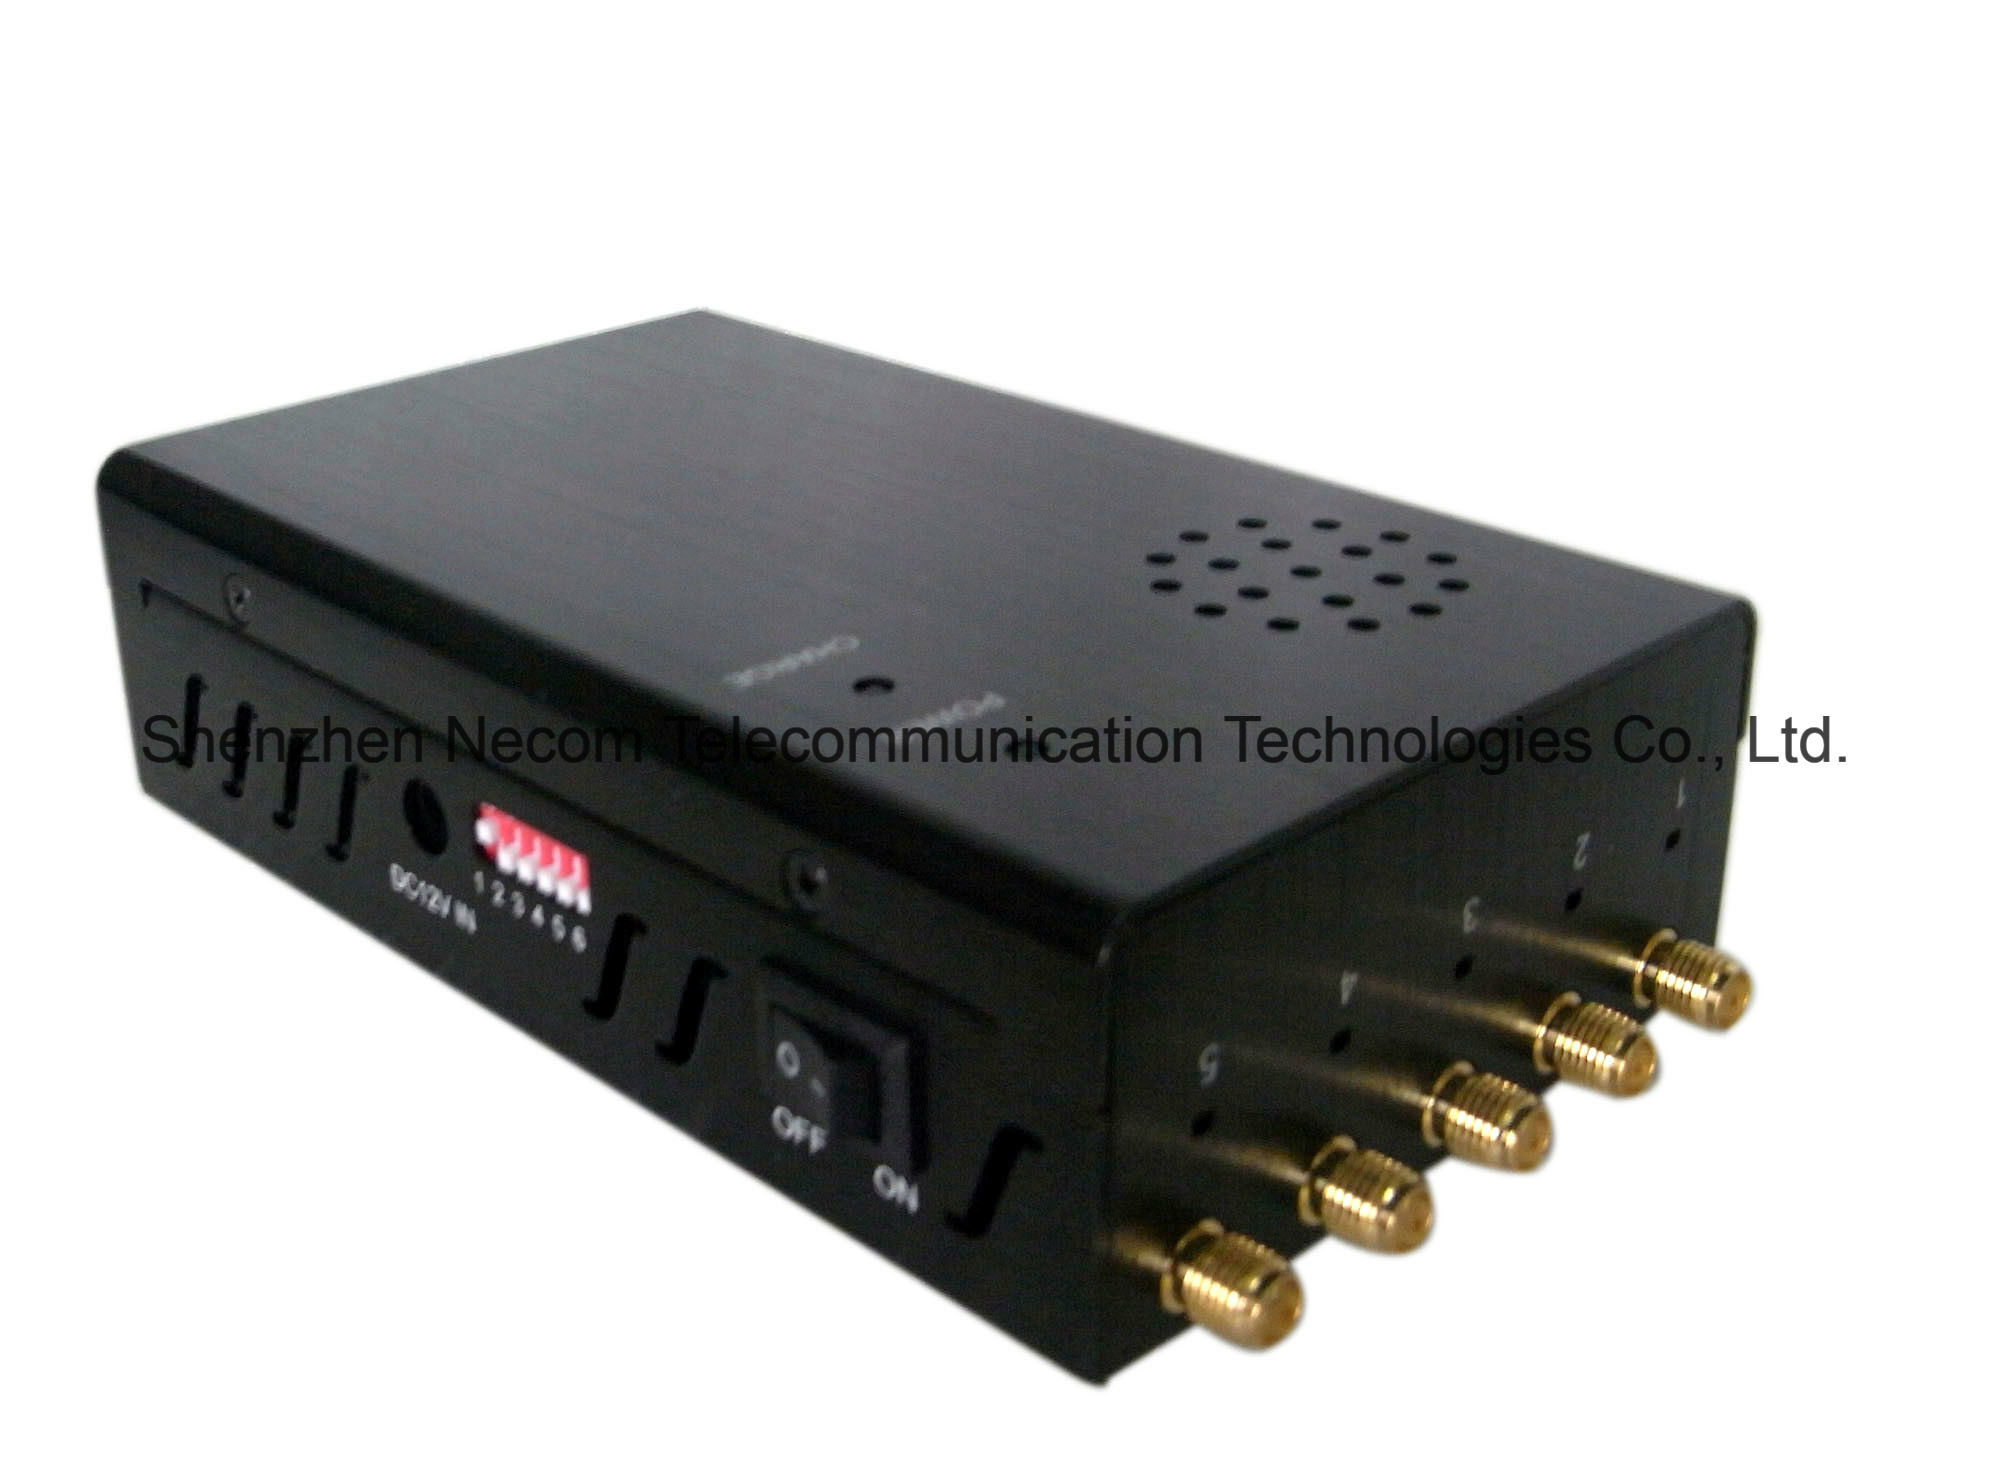 signal jammer Coppell - China Fashion Style Newest CDMA/GSM/Dcs/Phs/3G Cell Phone Signal Jammer - China 5 Band Signal Blockers, Five Antennas Jammers